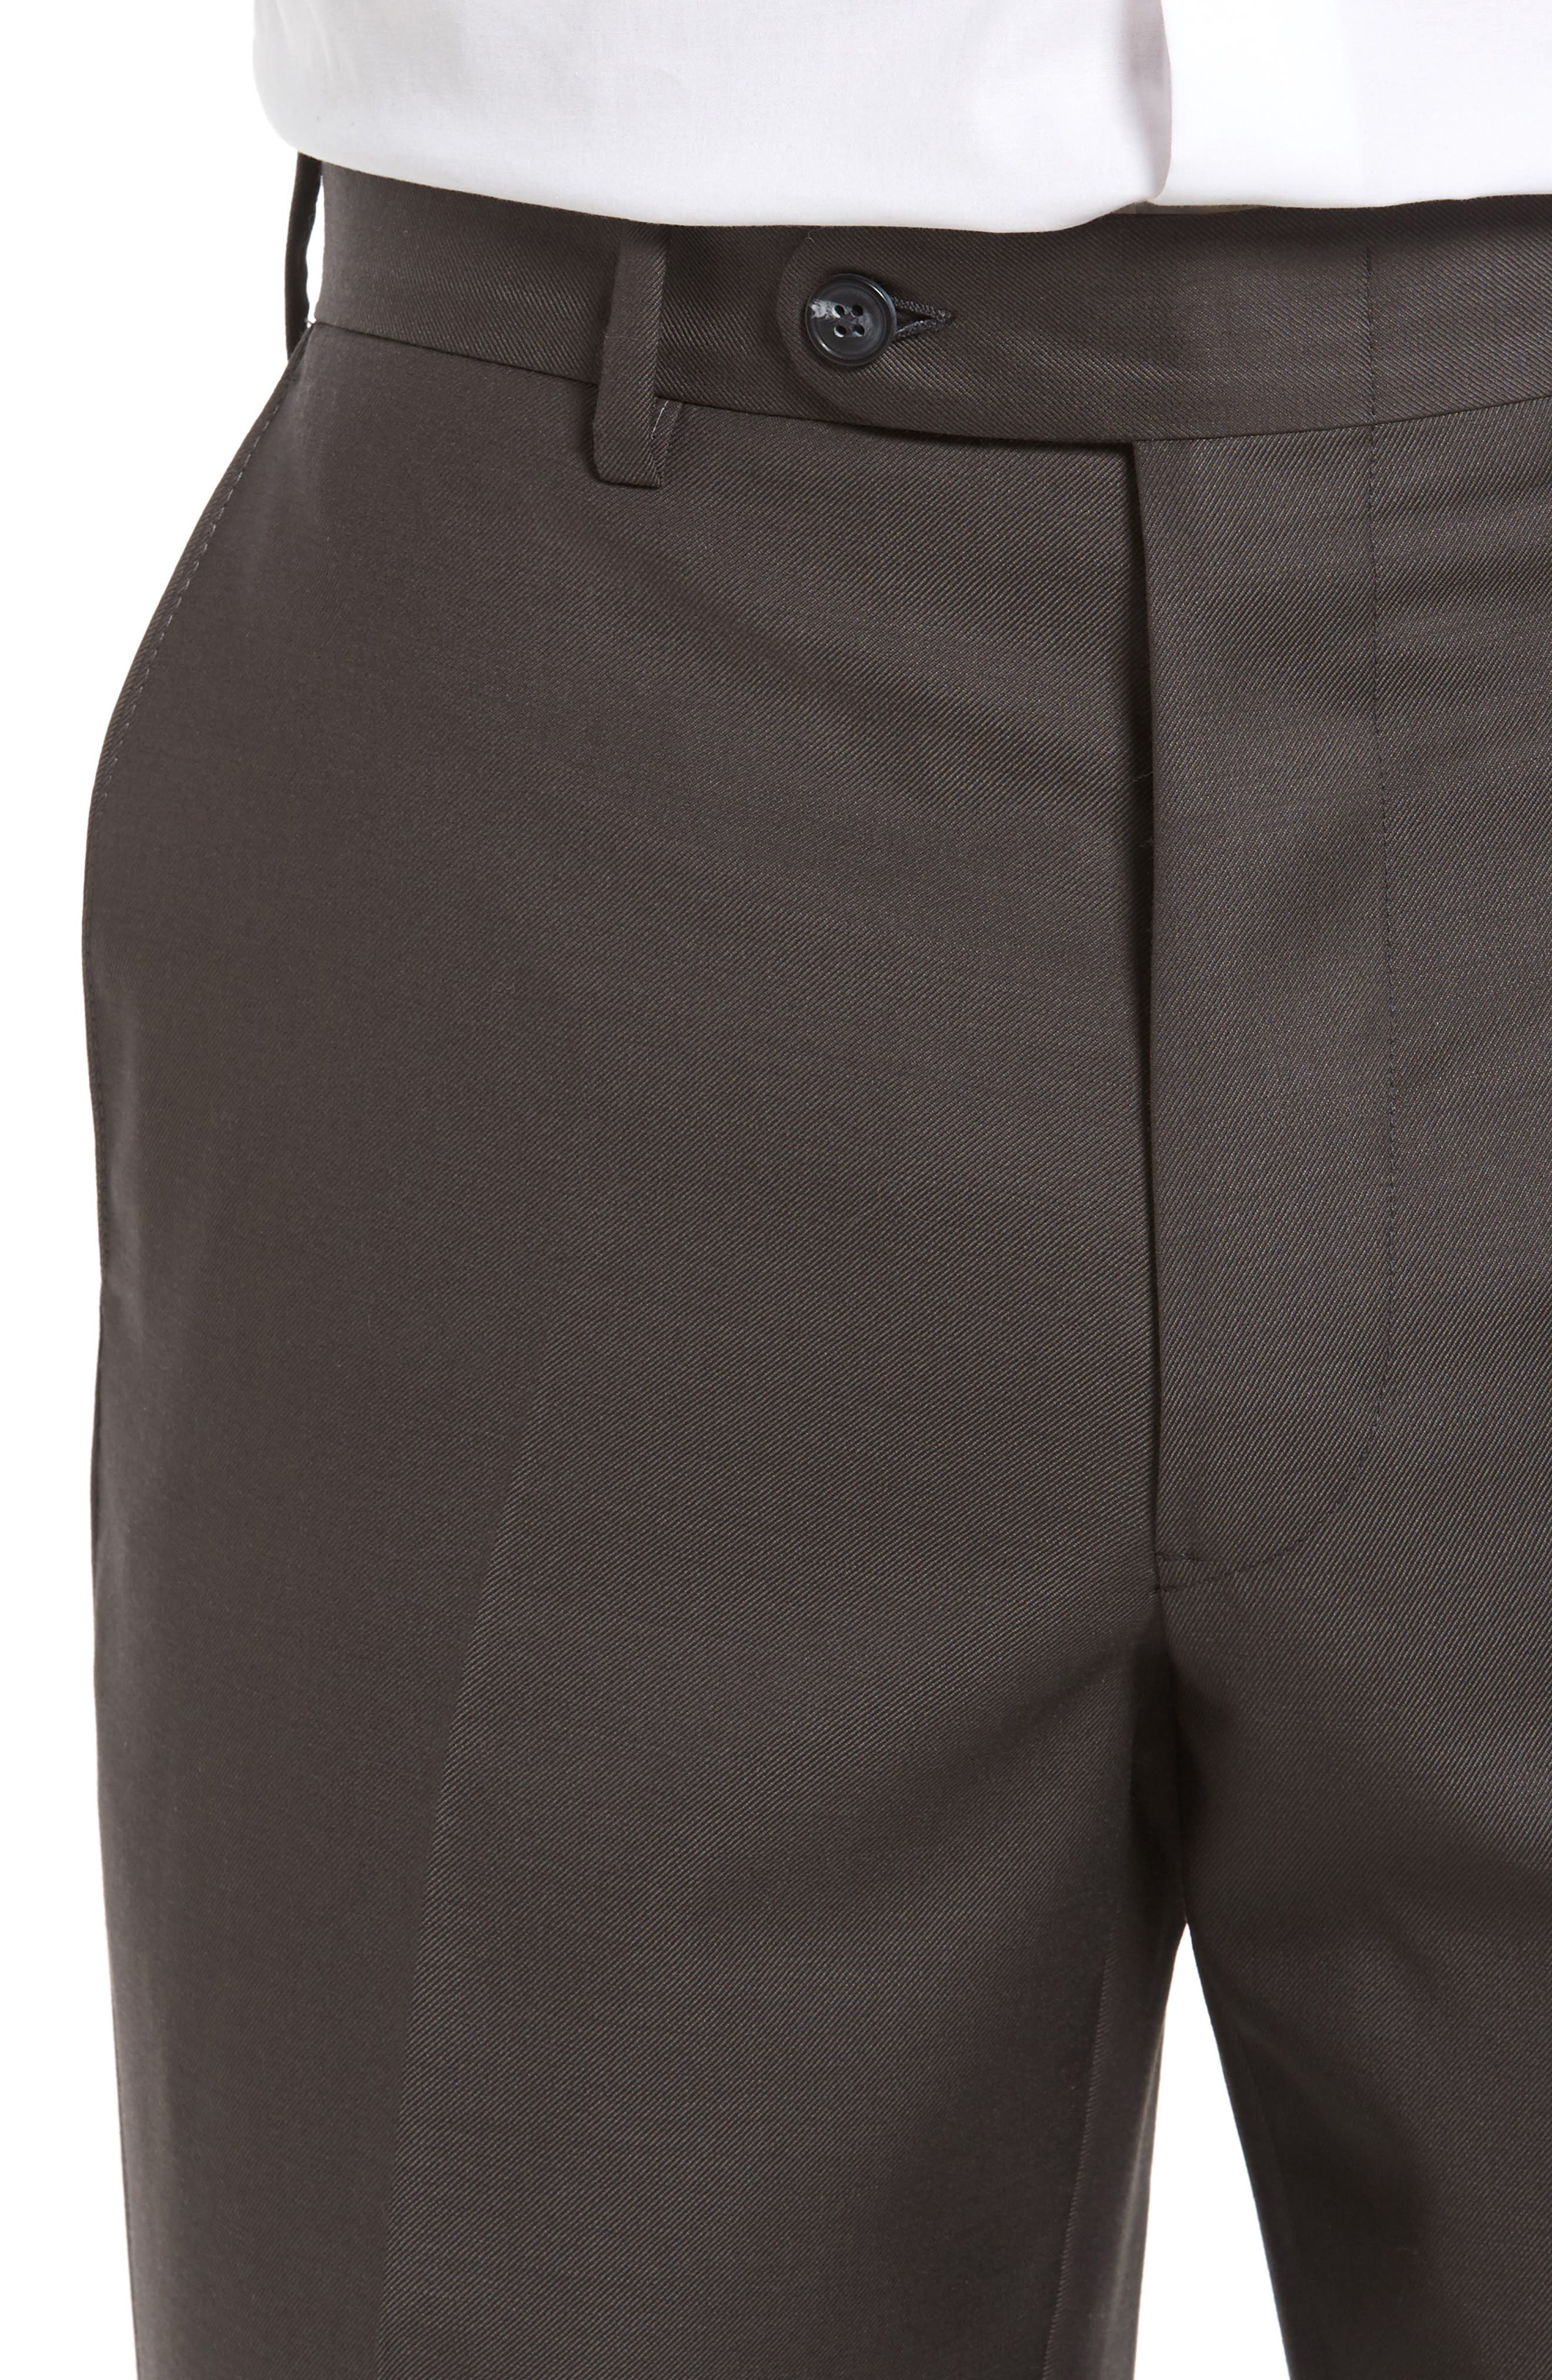 Flat Front Worsted Wool Trousers,                             Alternate thumbnail 4, color,                             Dark Taupe